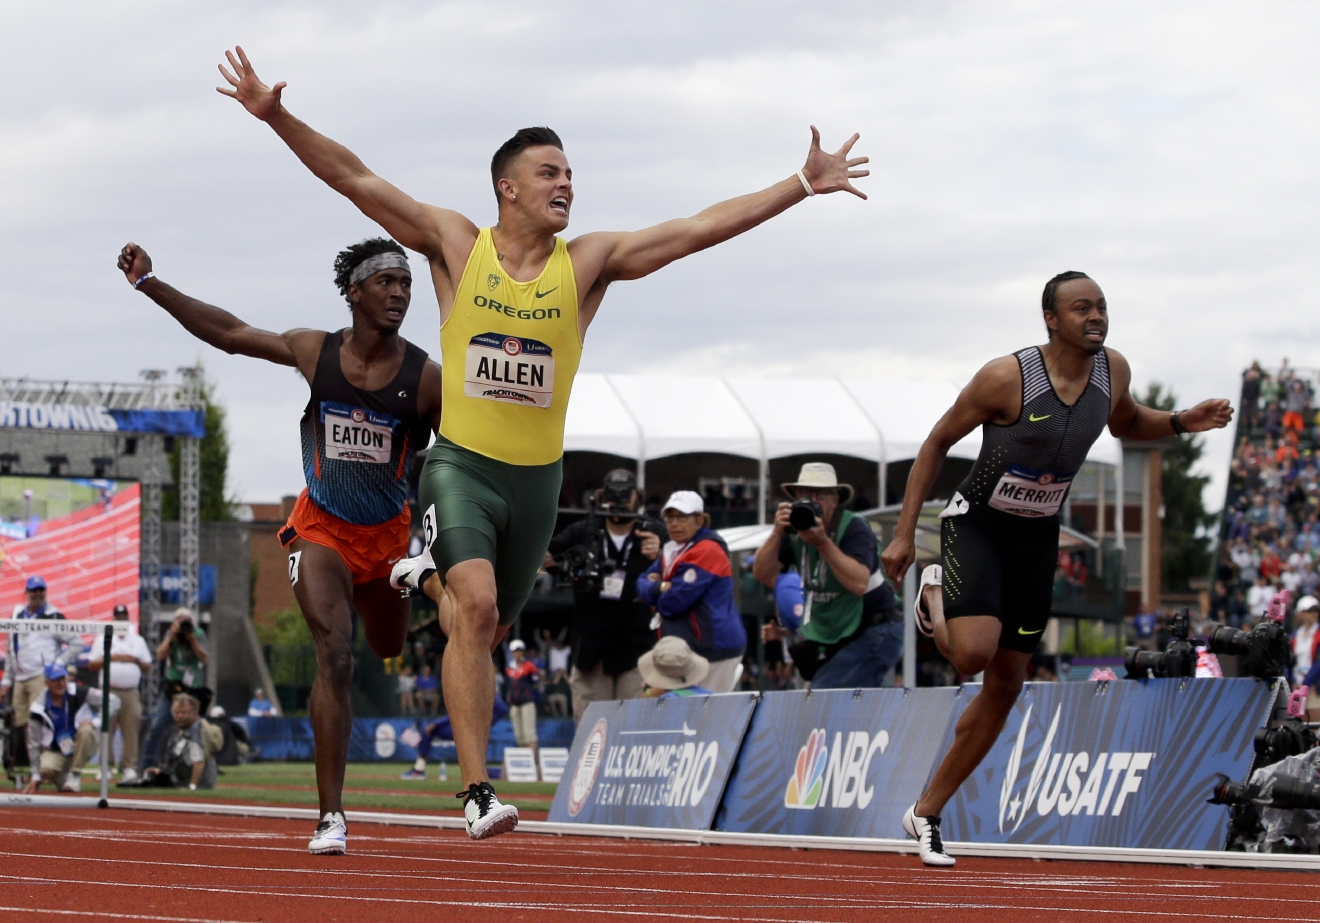 Devon Allen celebrates his win in the finals of the men's 110-meter hurdles at the U.S. Olympic Track and Field Trials, Saturday, July 9, 2016, in Eugene Ore.  (AP Photo/Marcio Jose Sanchez)